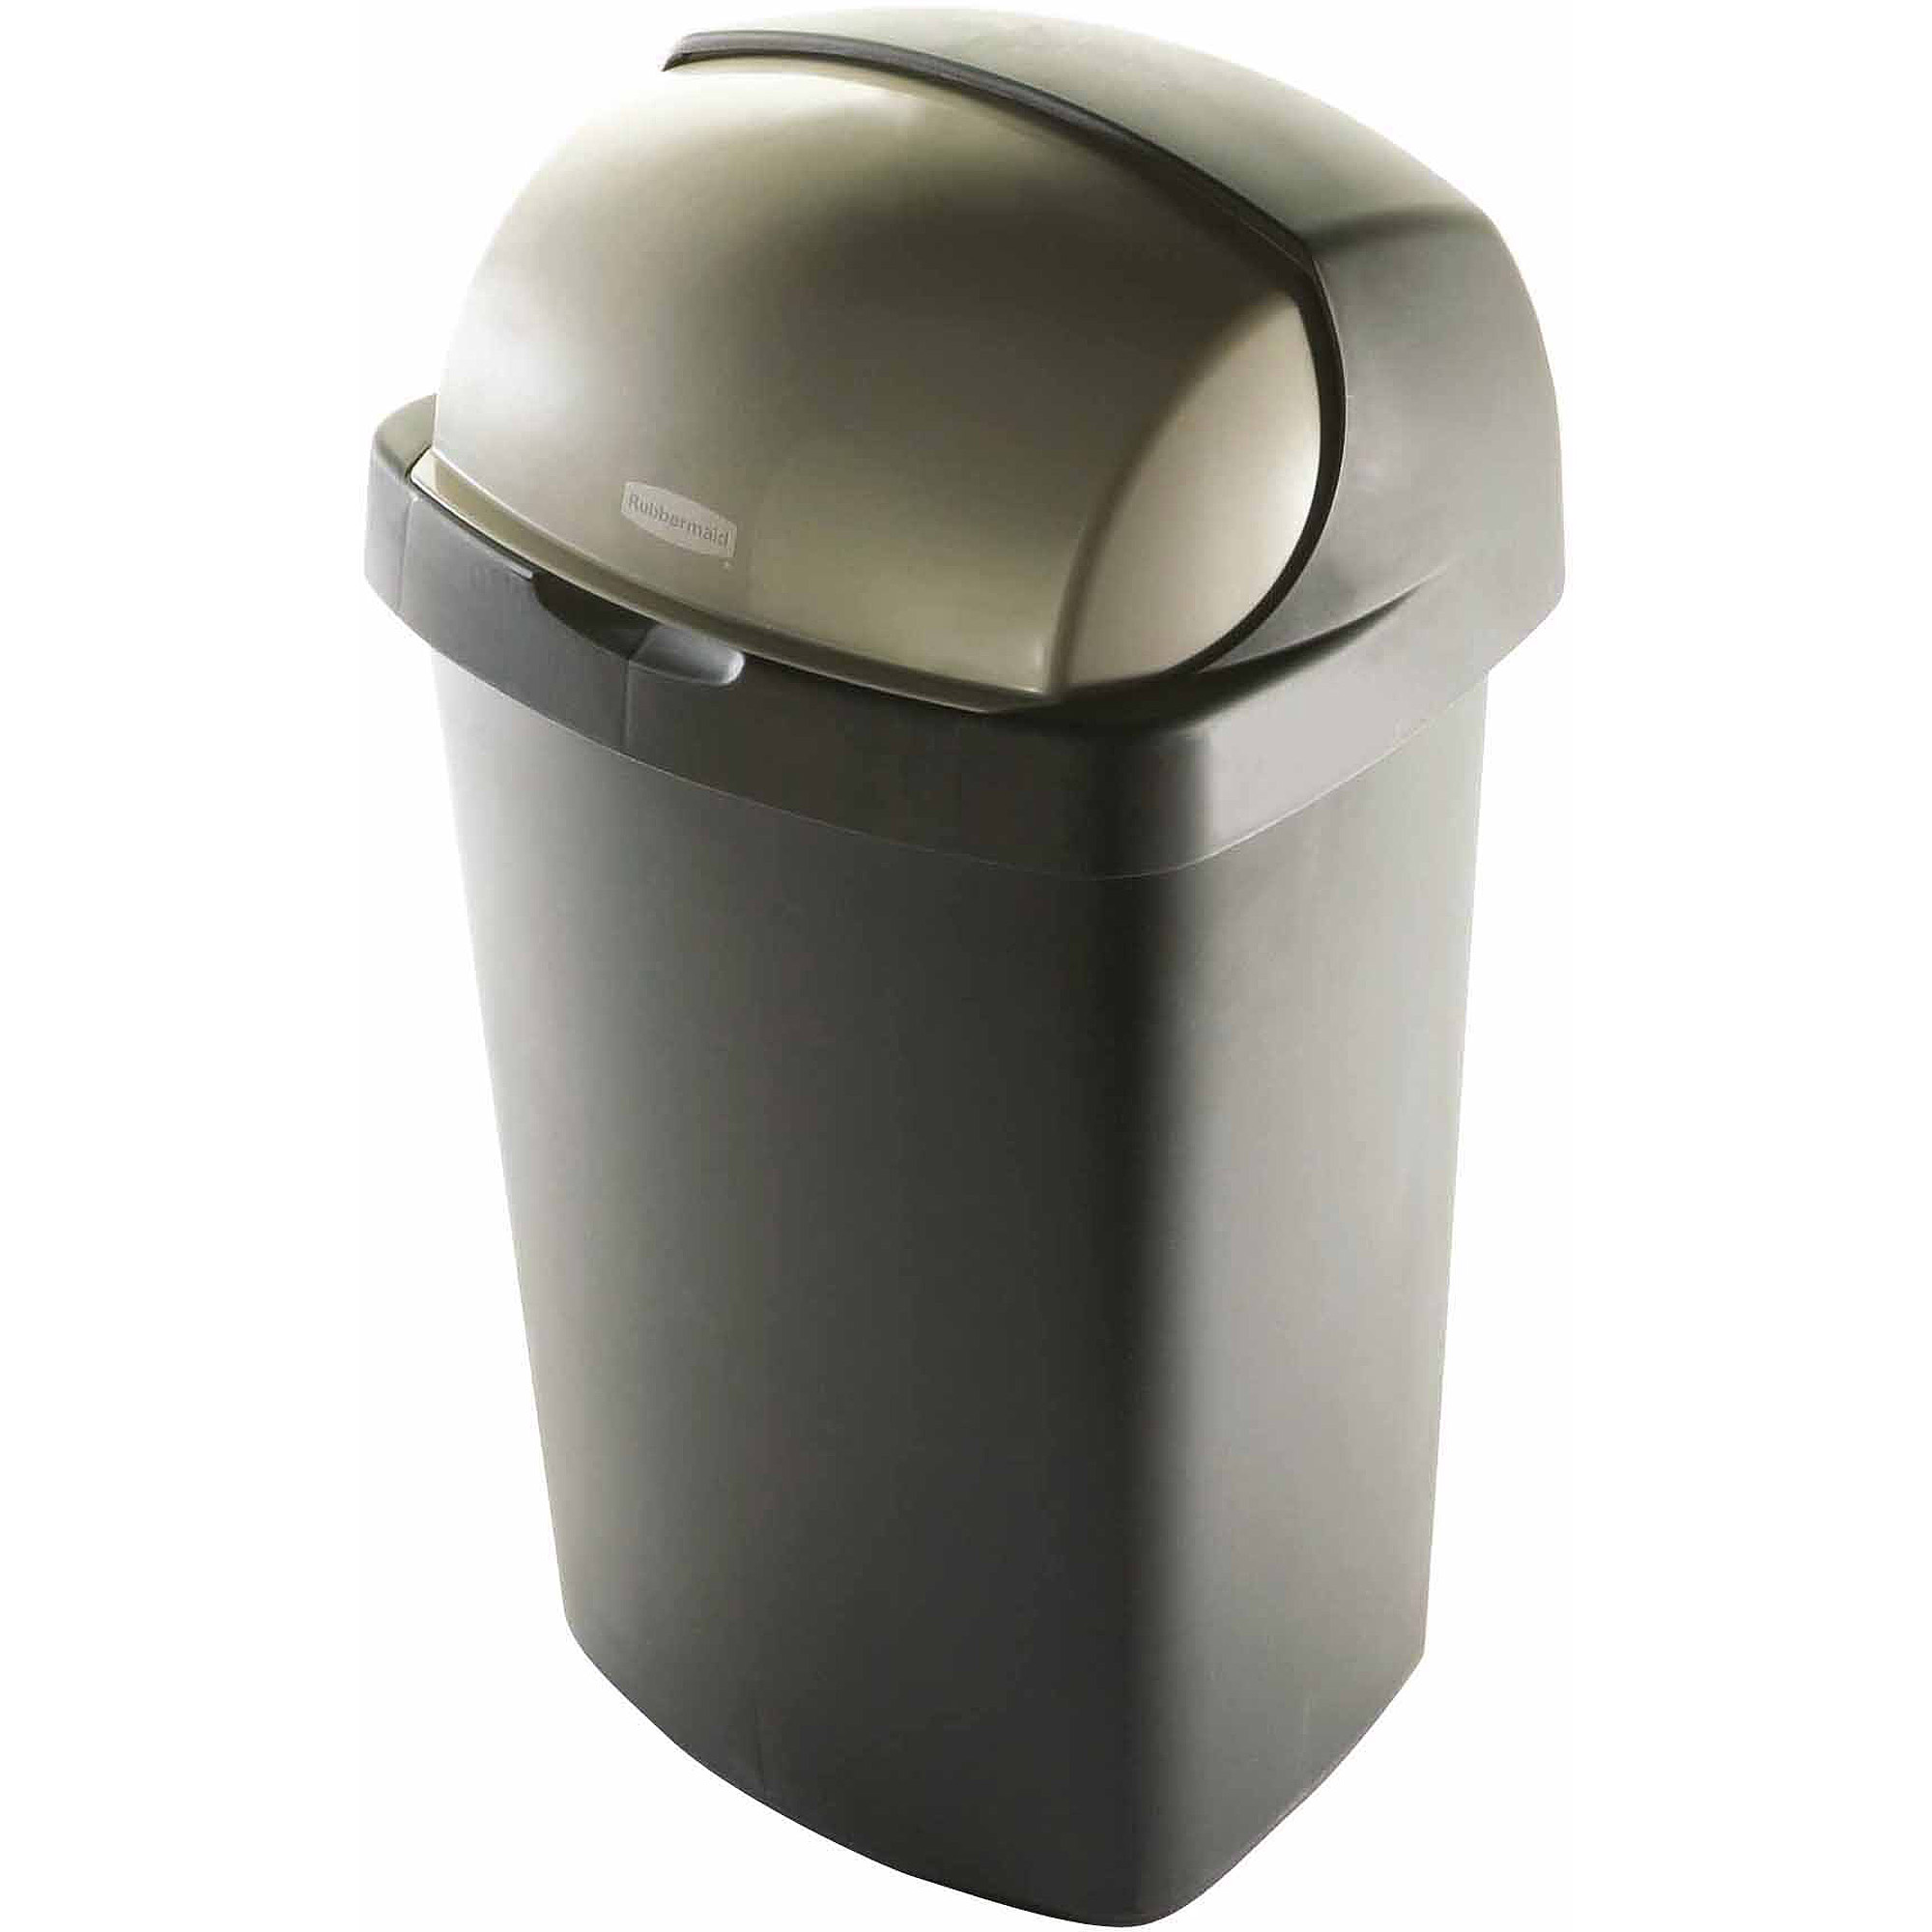 rubbermaid 13-gallon roll top wastebasket, bronze - walmart